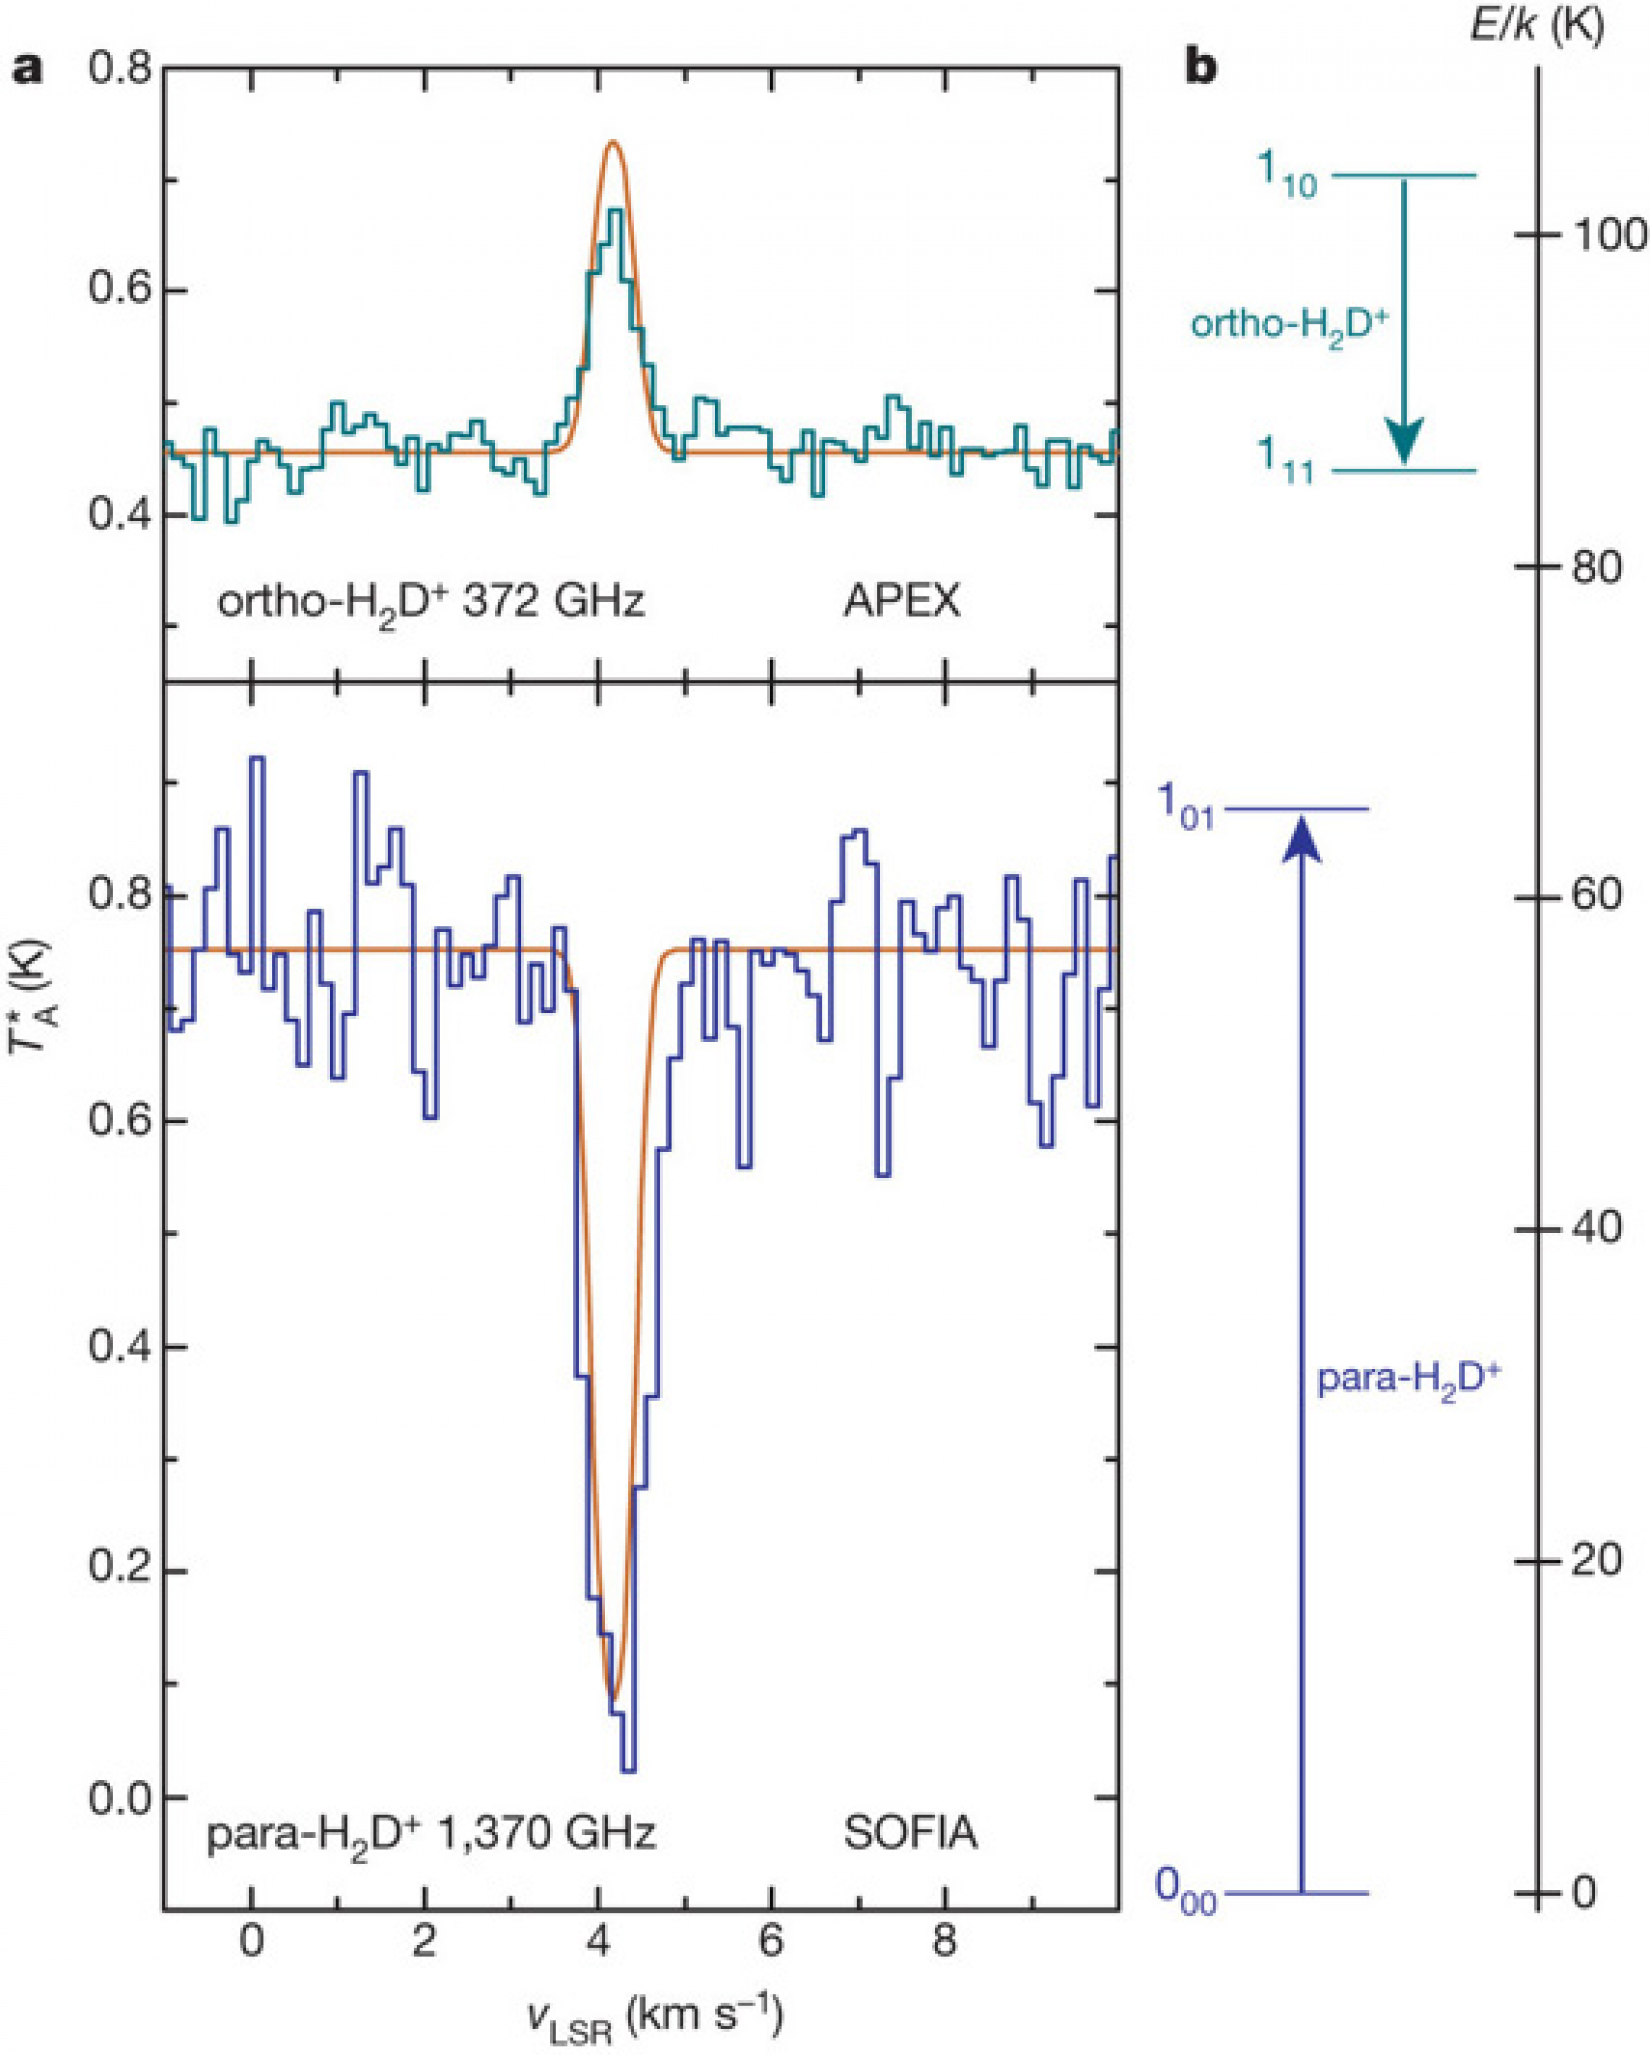 Ionized H2D observations give an age of one million years for a cloud core forming Sun-like stars